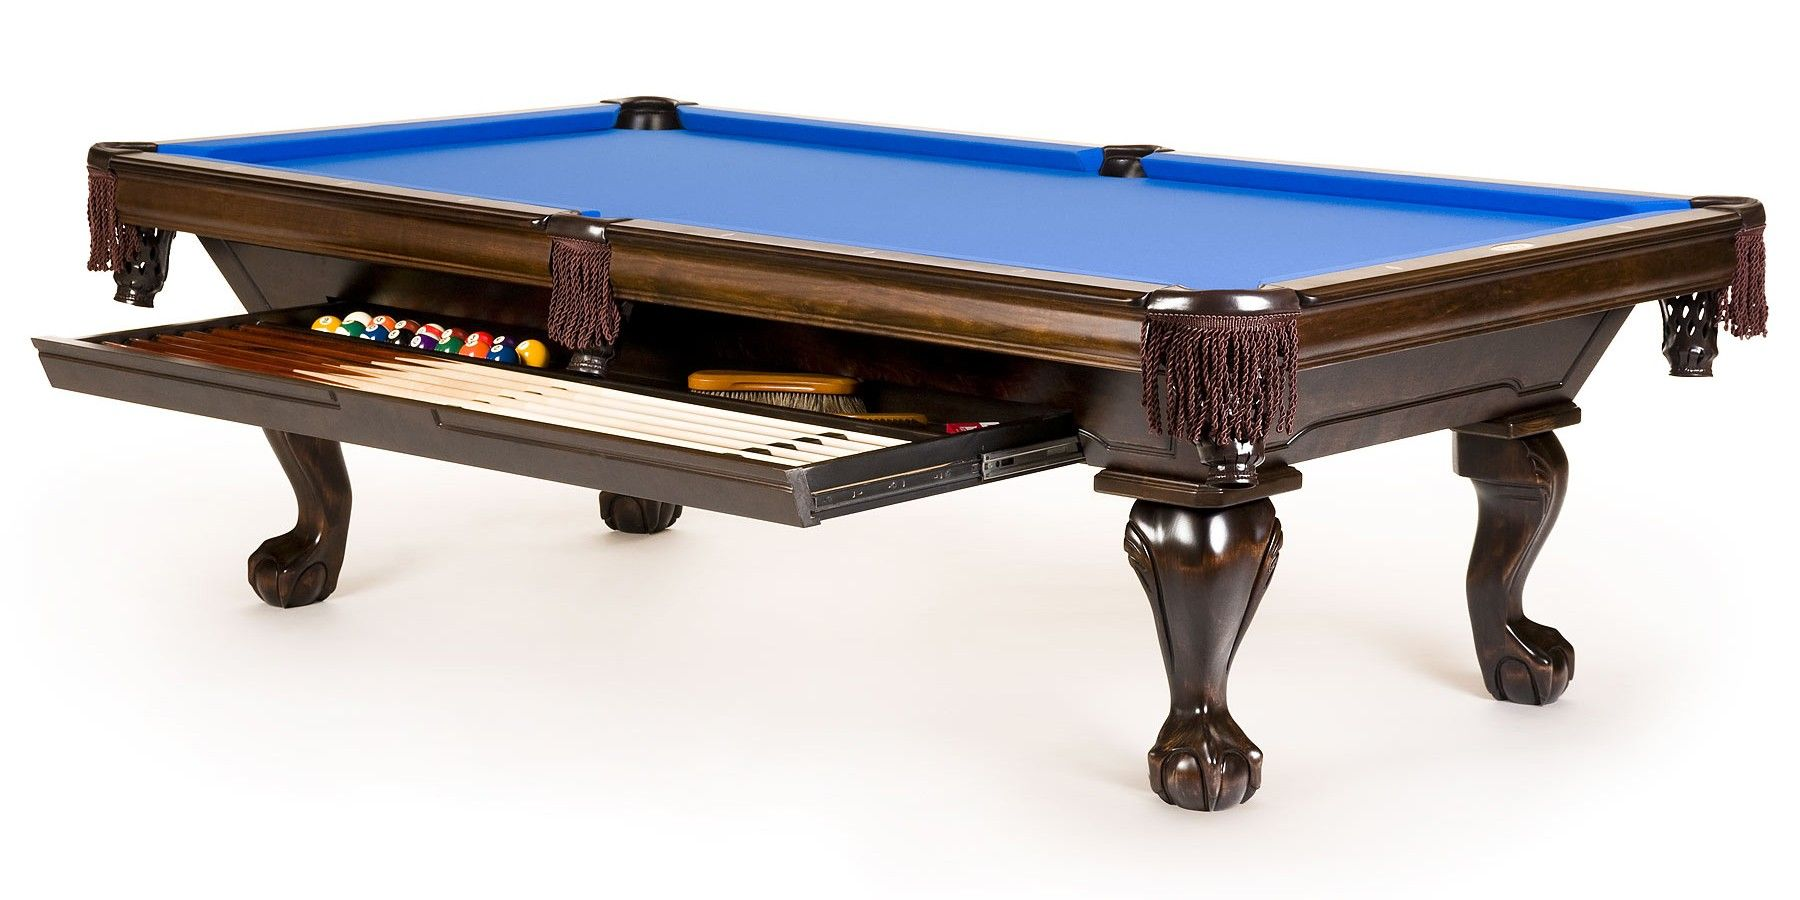 benchmark billiards denver pool table! with a built in storage